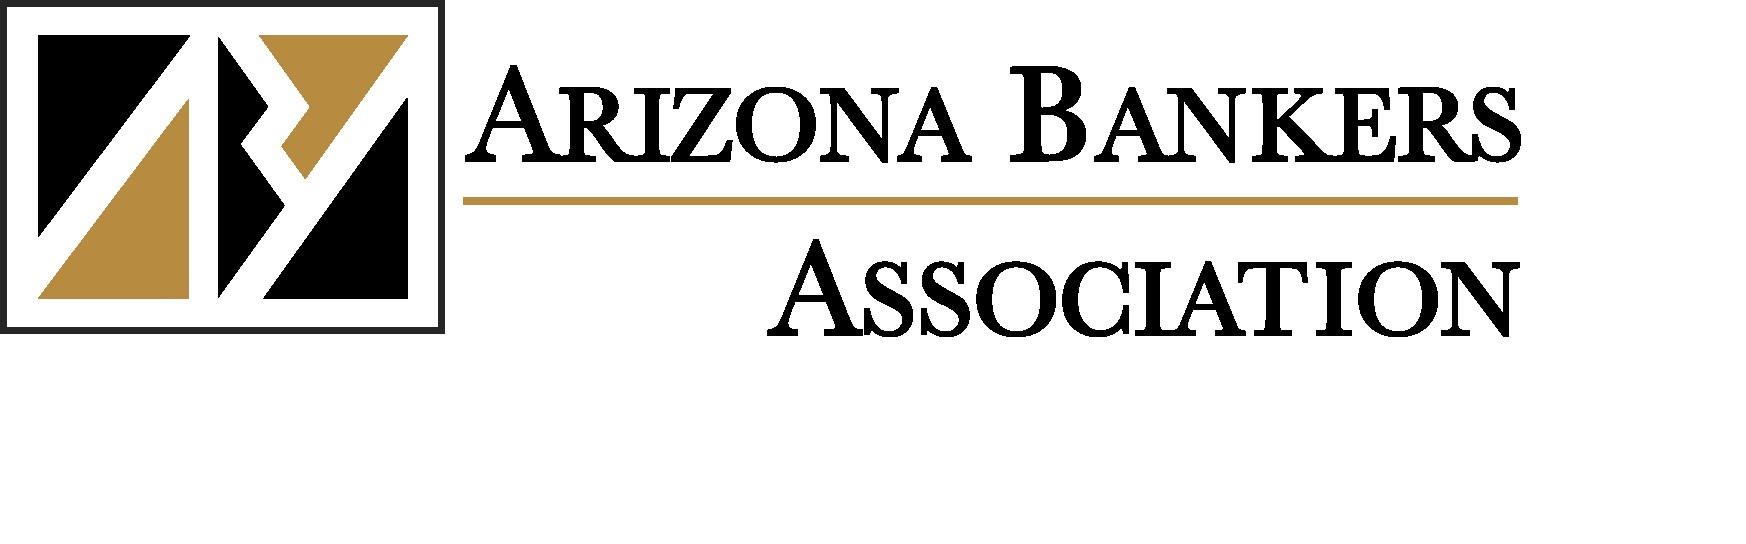 azbankers color logo